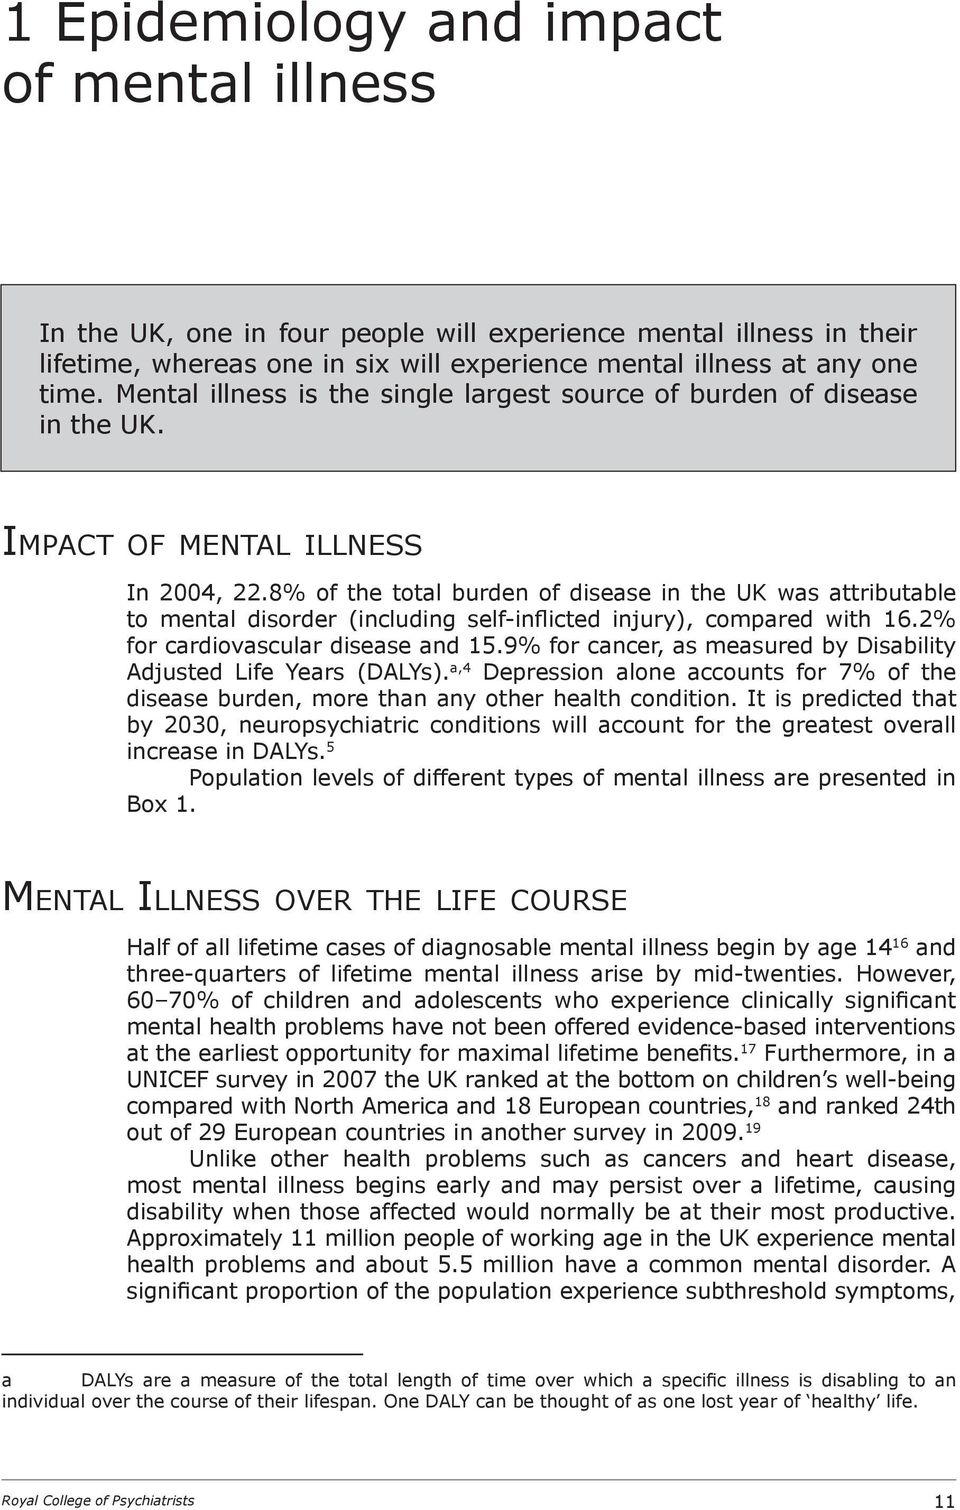 8% of the total burden of disease in the UK was attributable to mental disorder (including self-inflicted injury), compared with 16.2% for cardiovascular disease and 15.